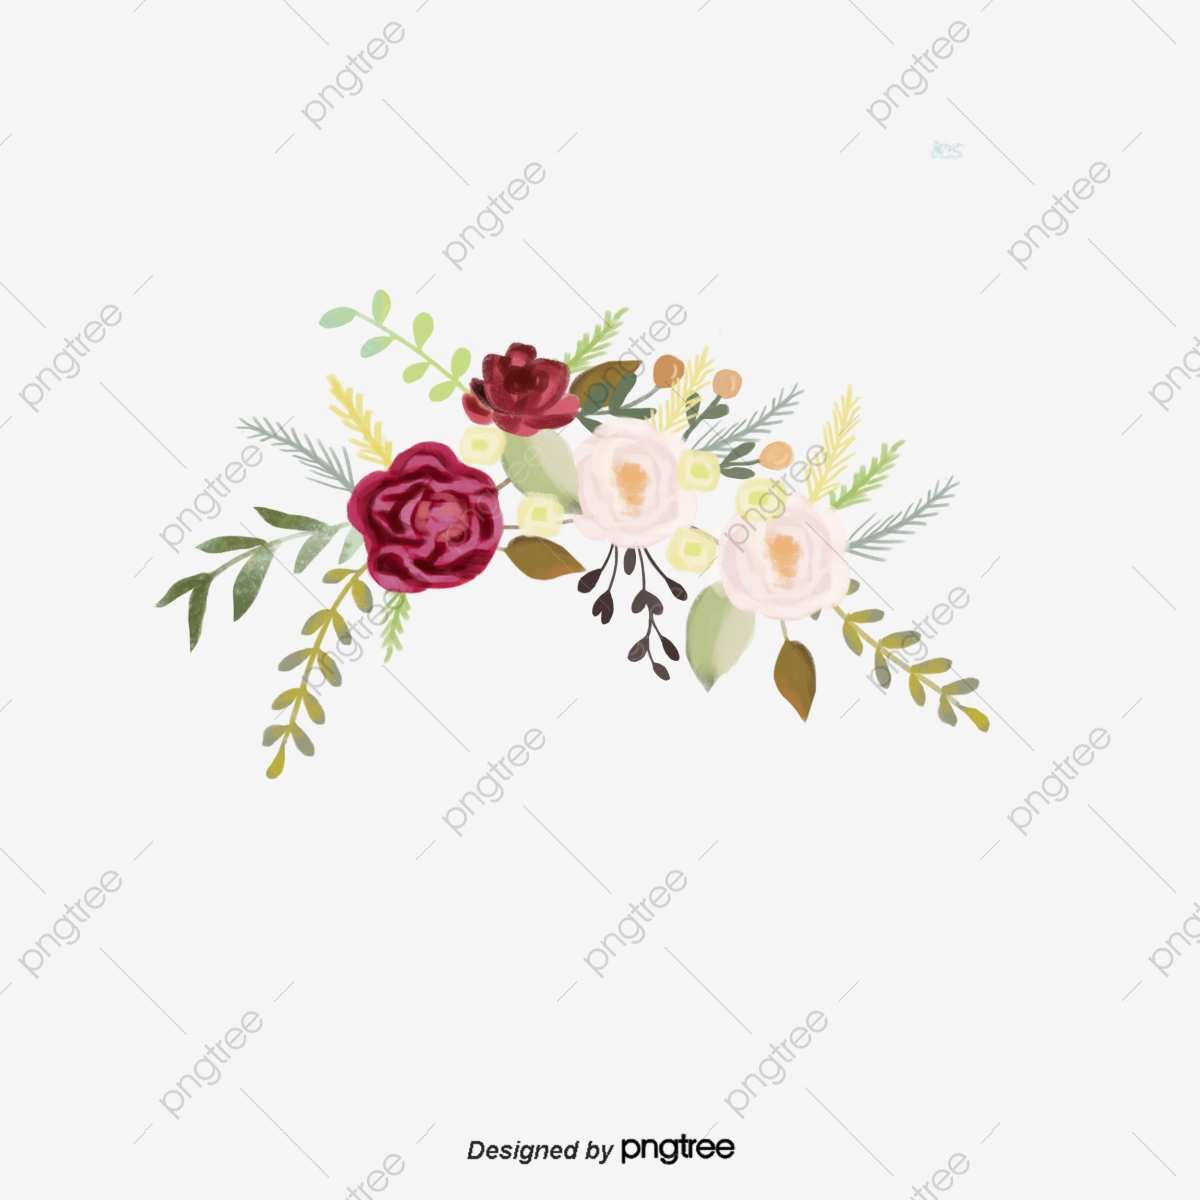 Dark Red Burgundy Flower Decorative Illustration Border Burgundy